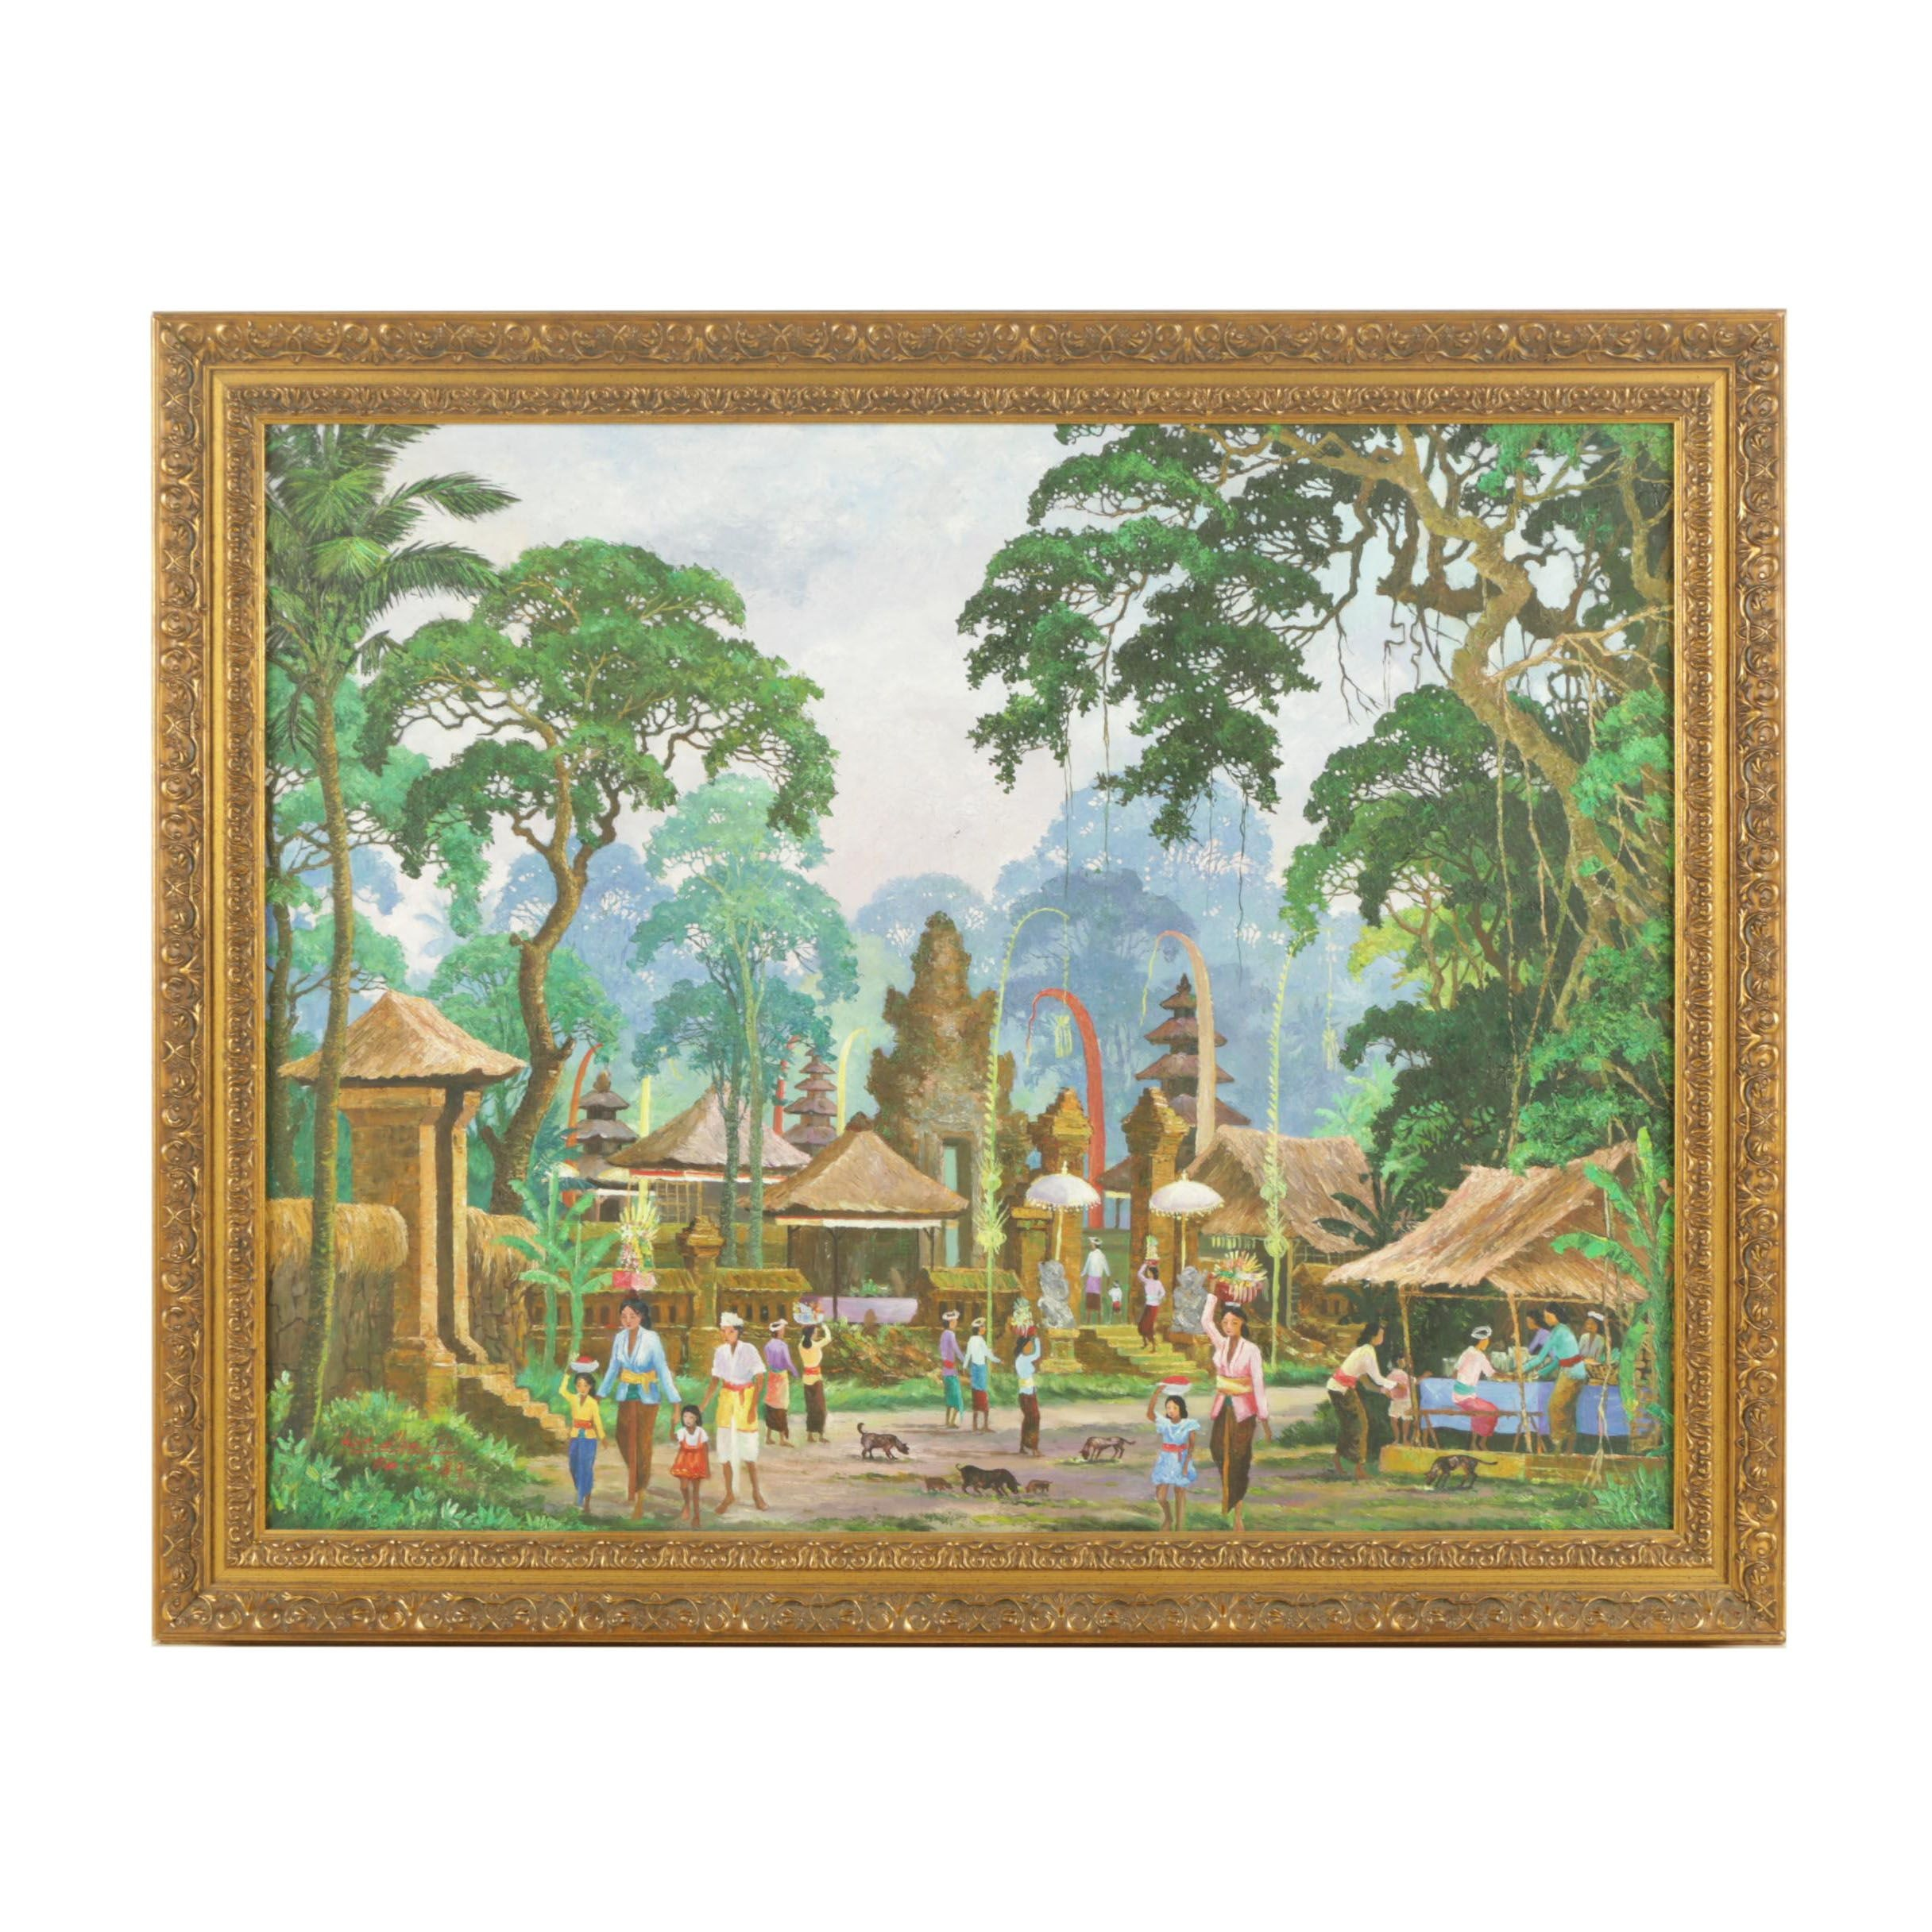 Oil Painting on Canvas of Southeast Asian Style Village Scene